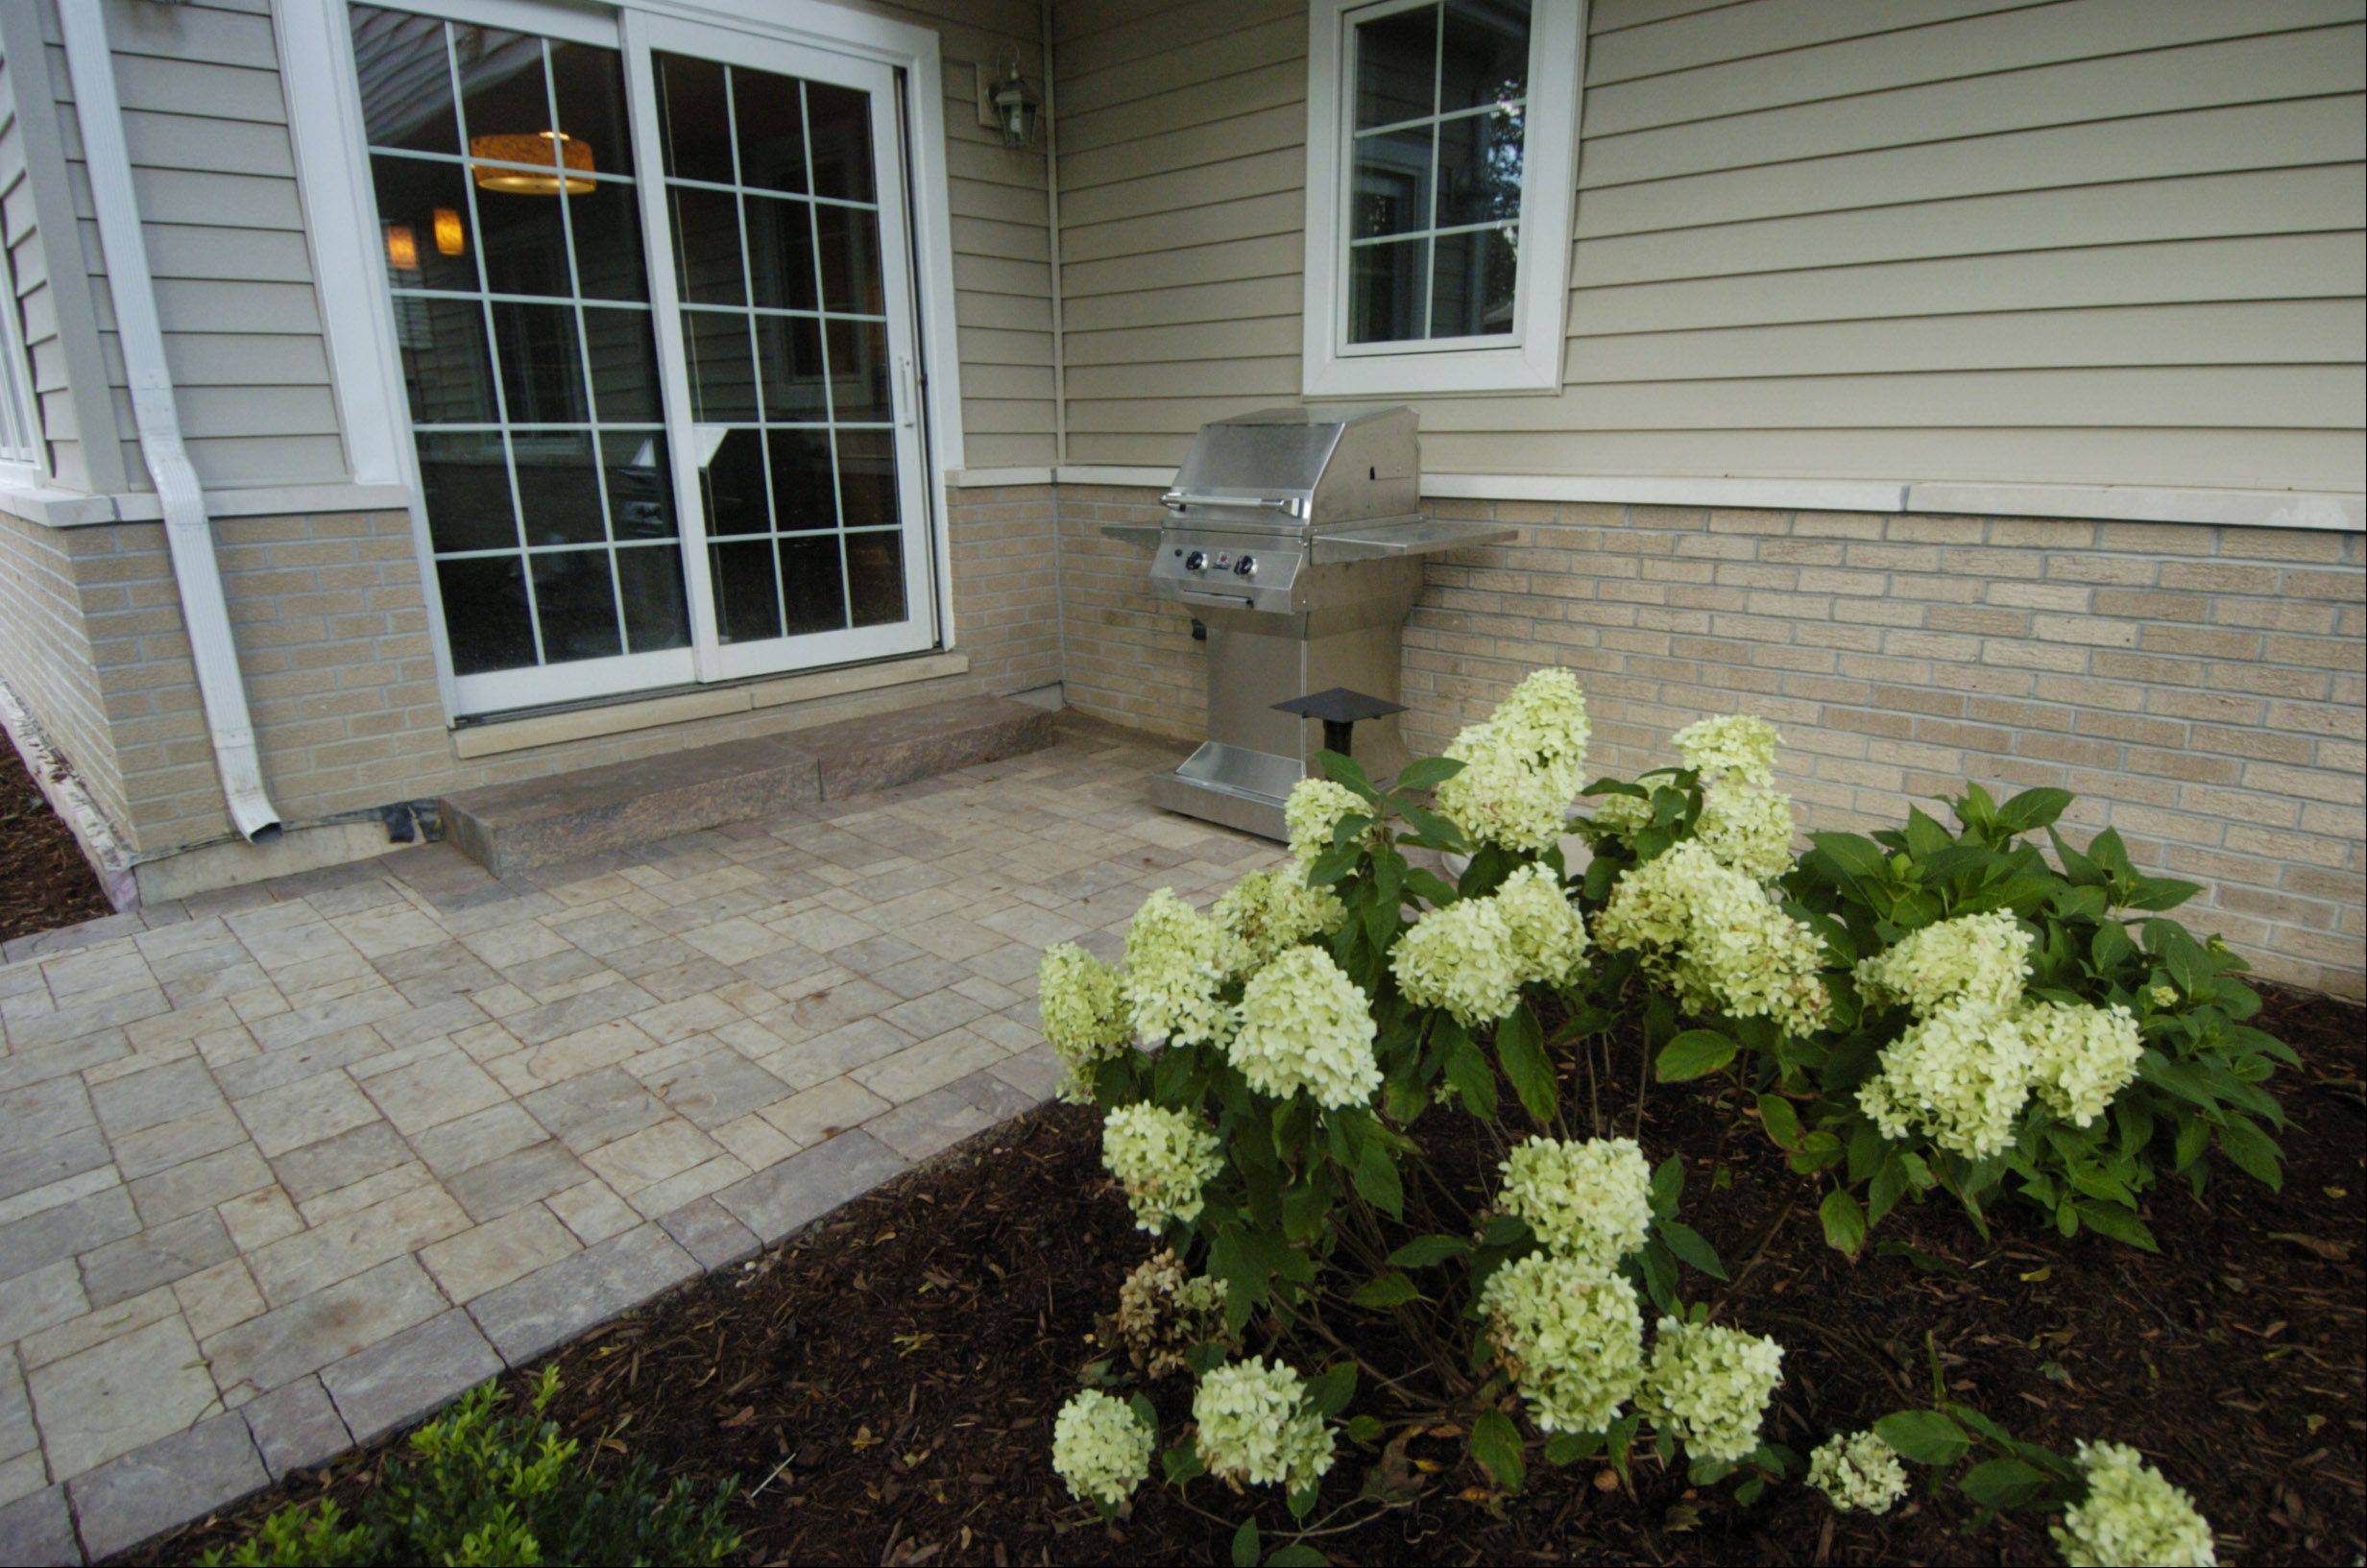 Hydrangeas highlight the landscaping in the Zeecks' backyard.